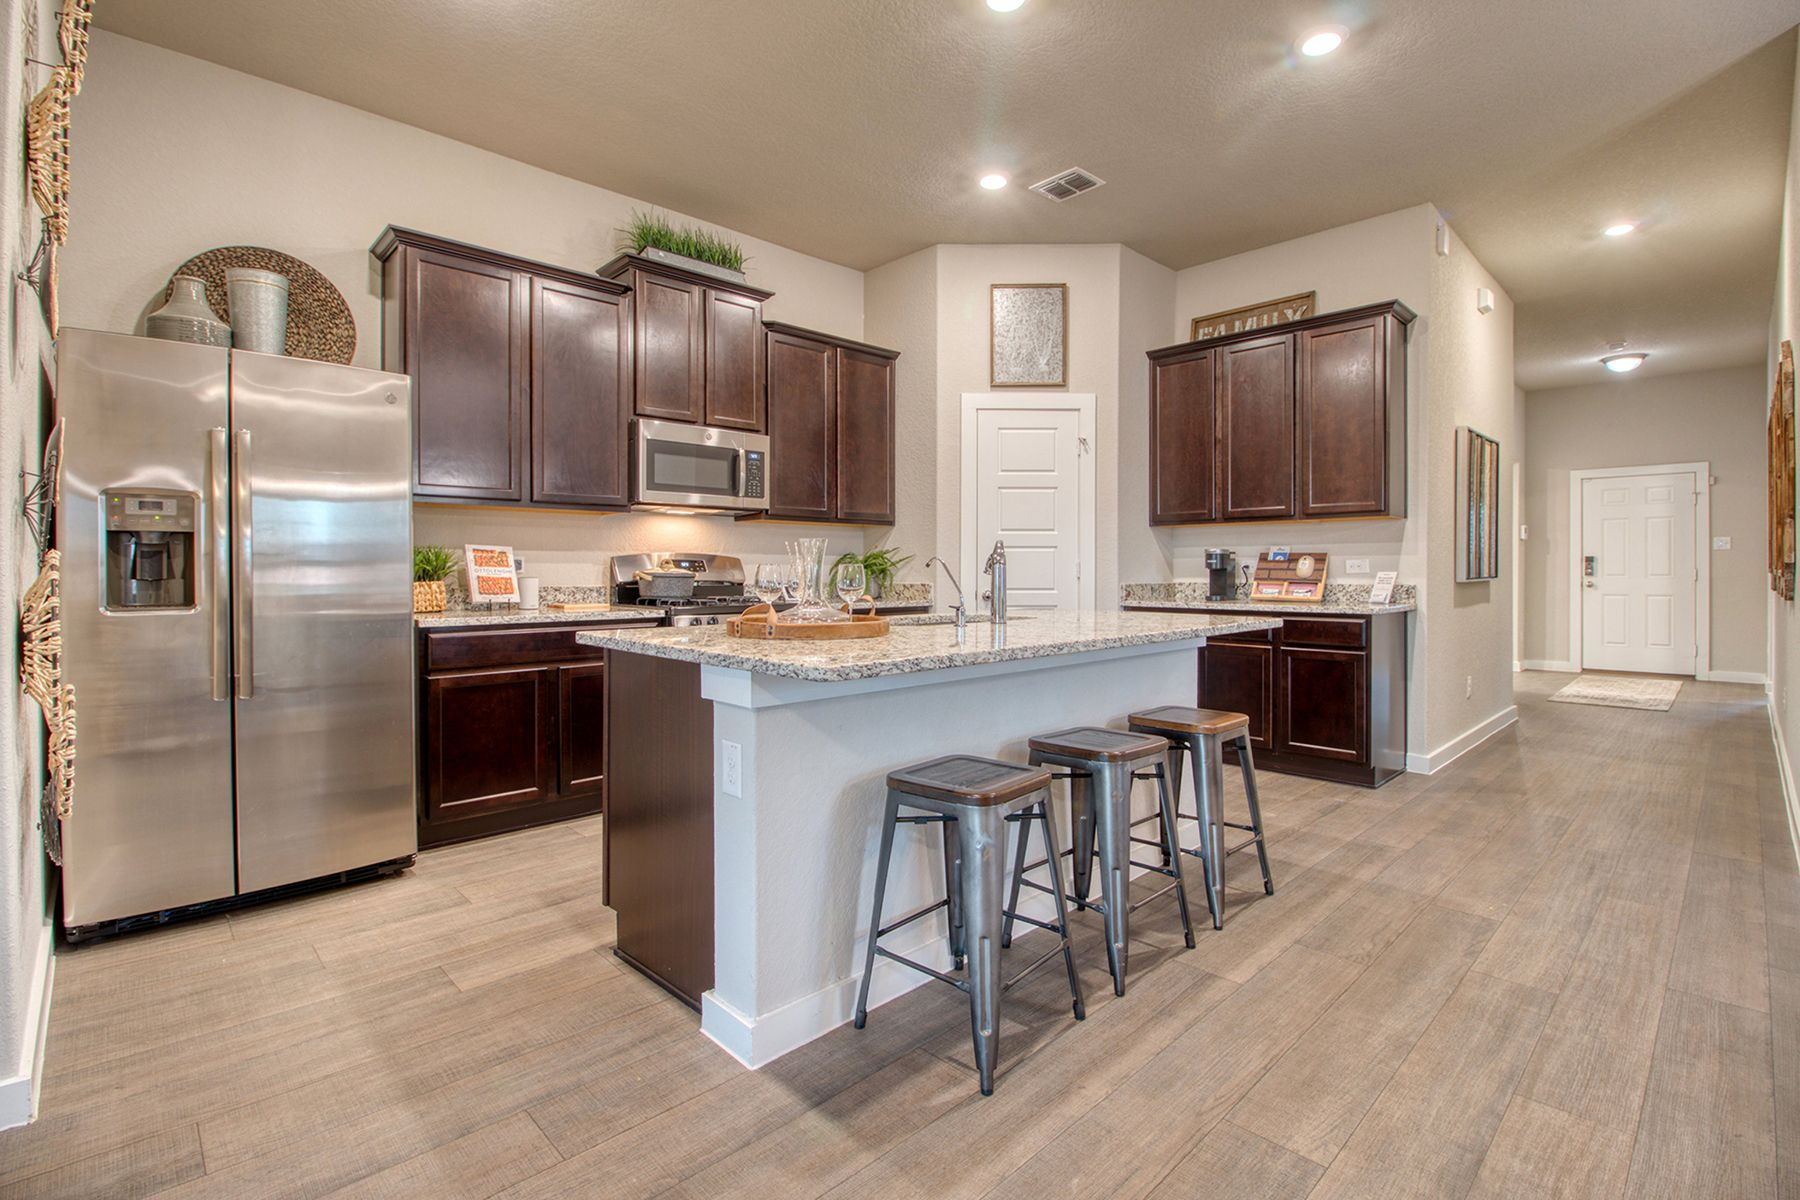 Kitchen featured in the Boone By M/I Homes in San Antonio, TX